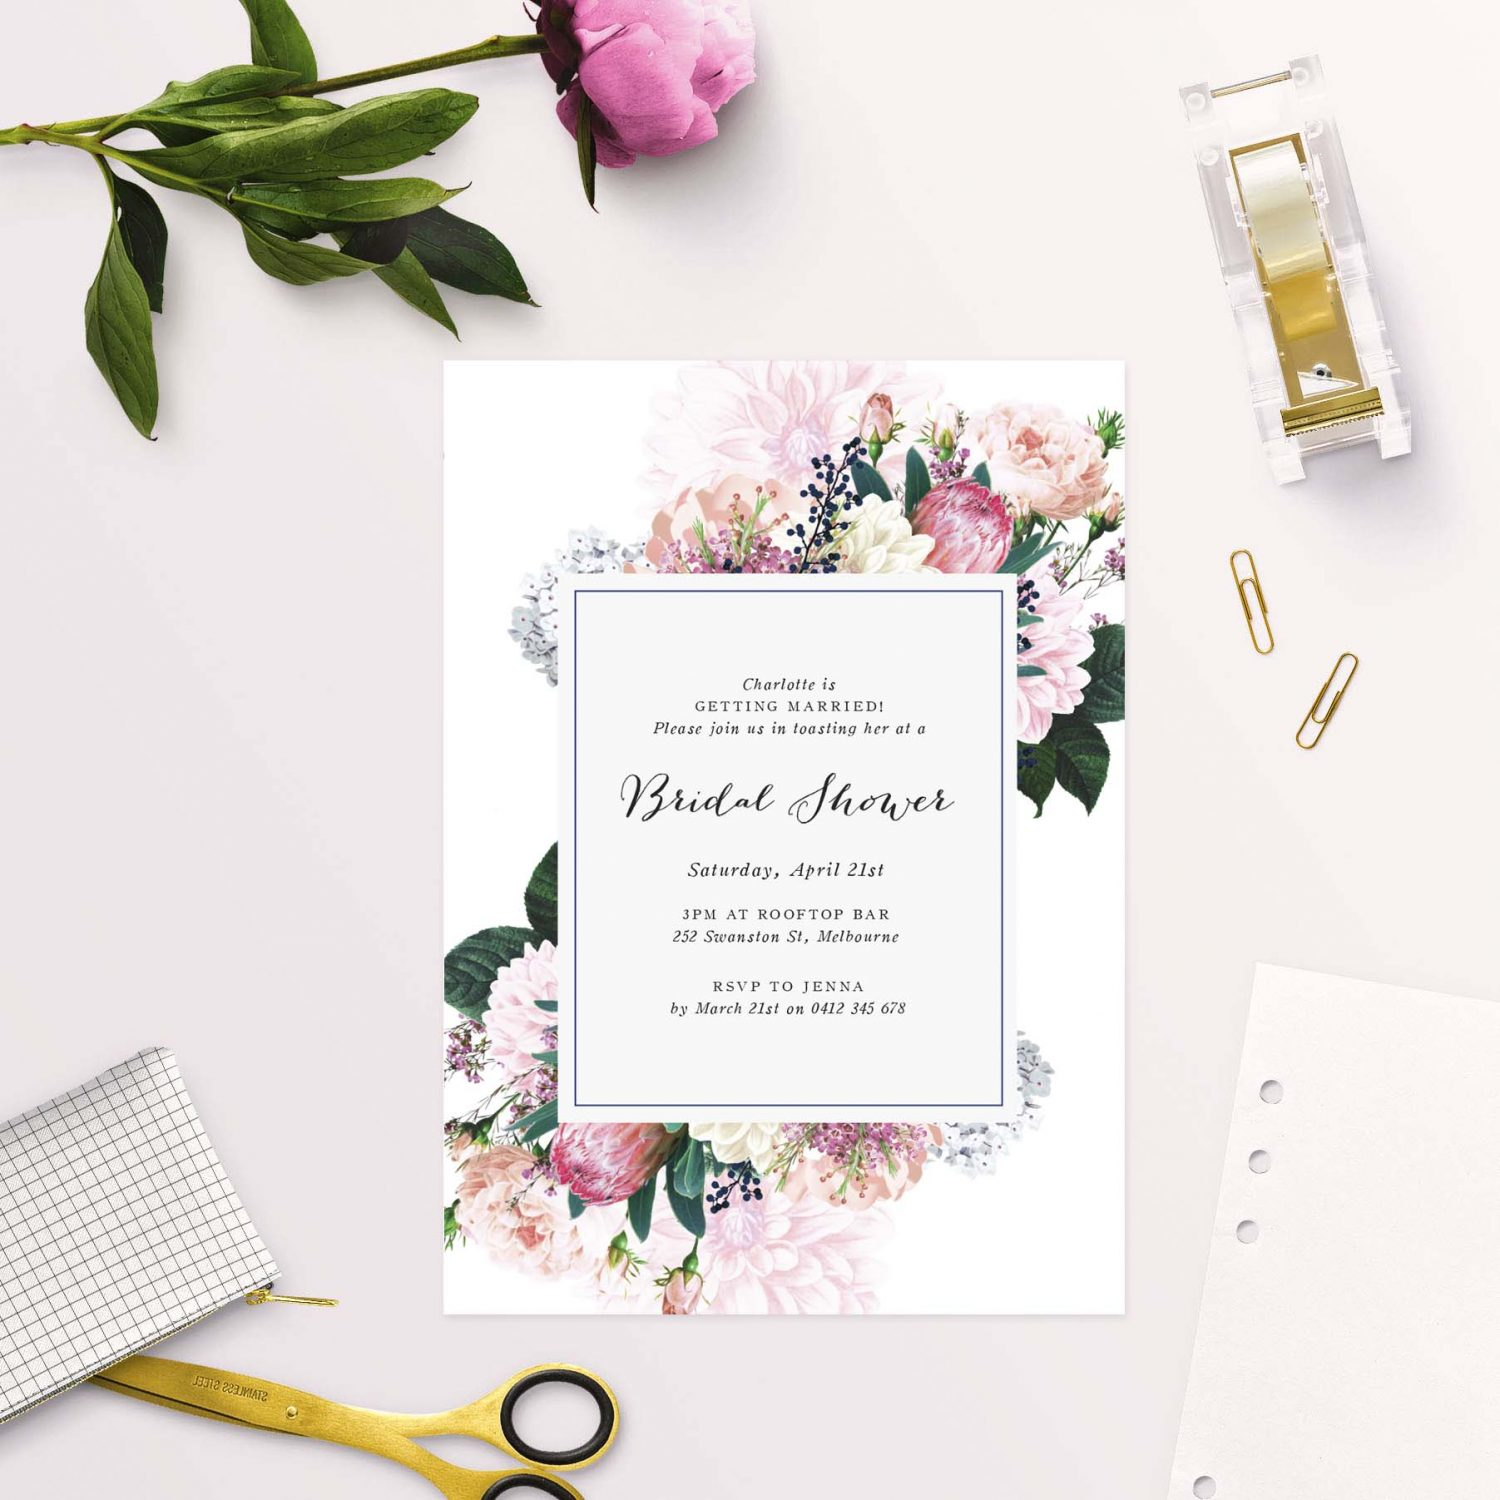 pink brunch invites bridal shower invitations archives category elegant calligraphy modern paper product